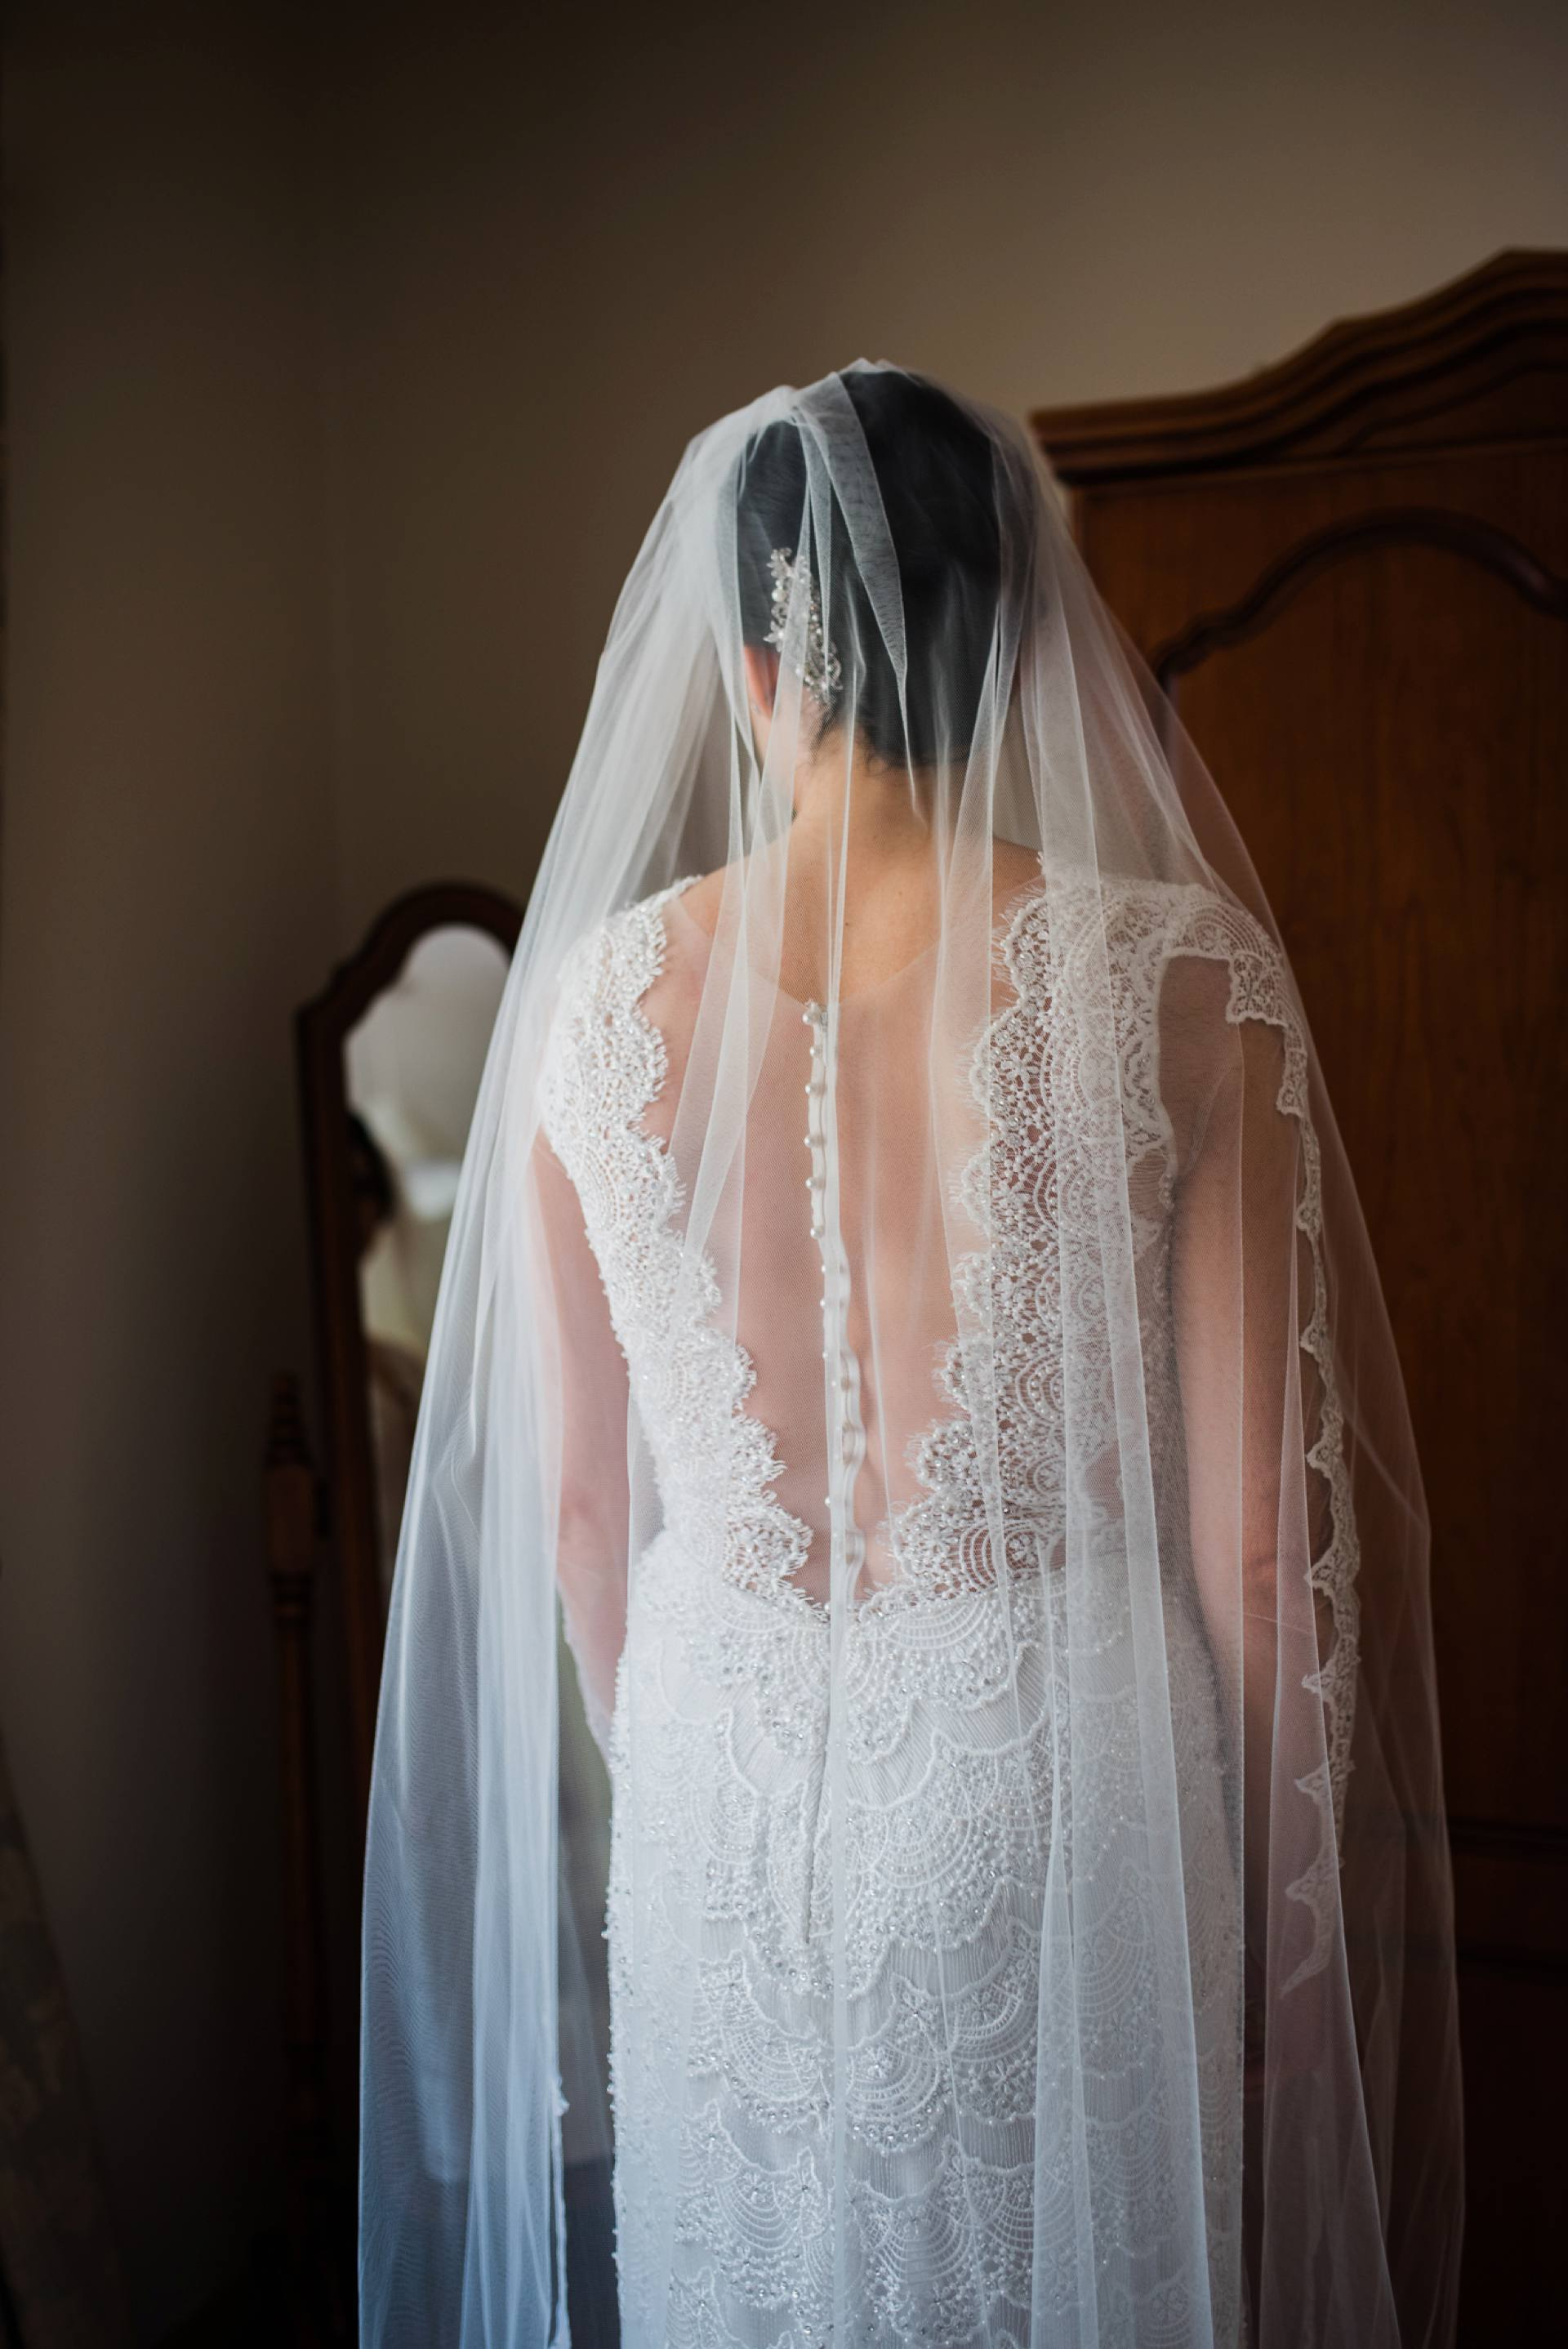 Lace detail on the back of wedding dress